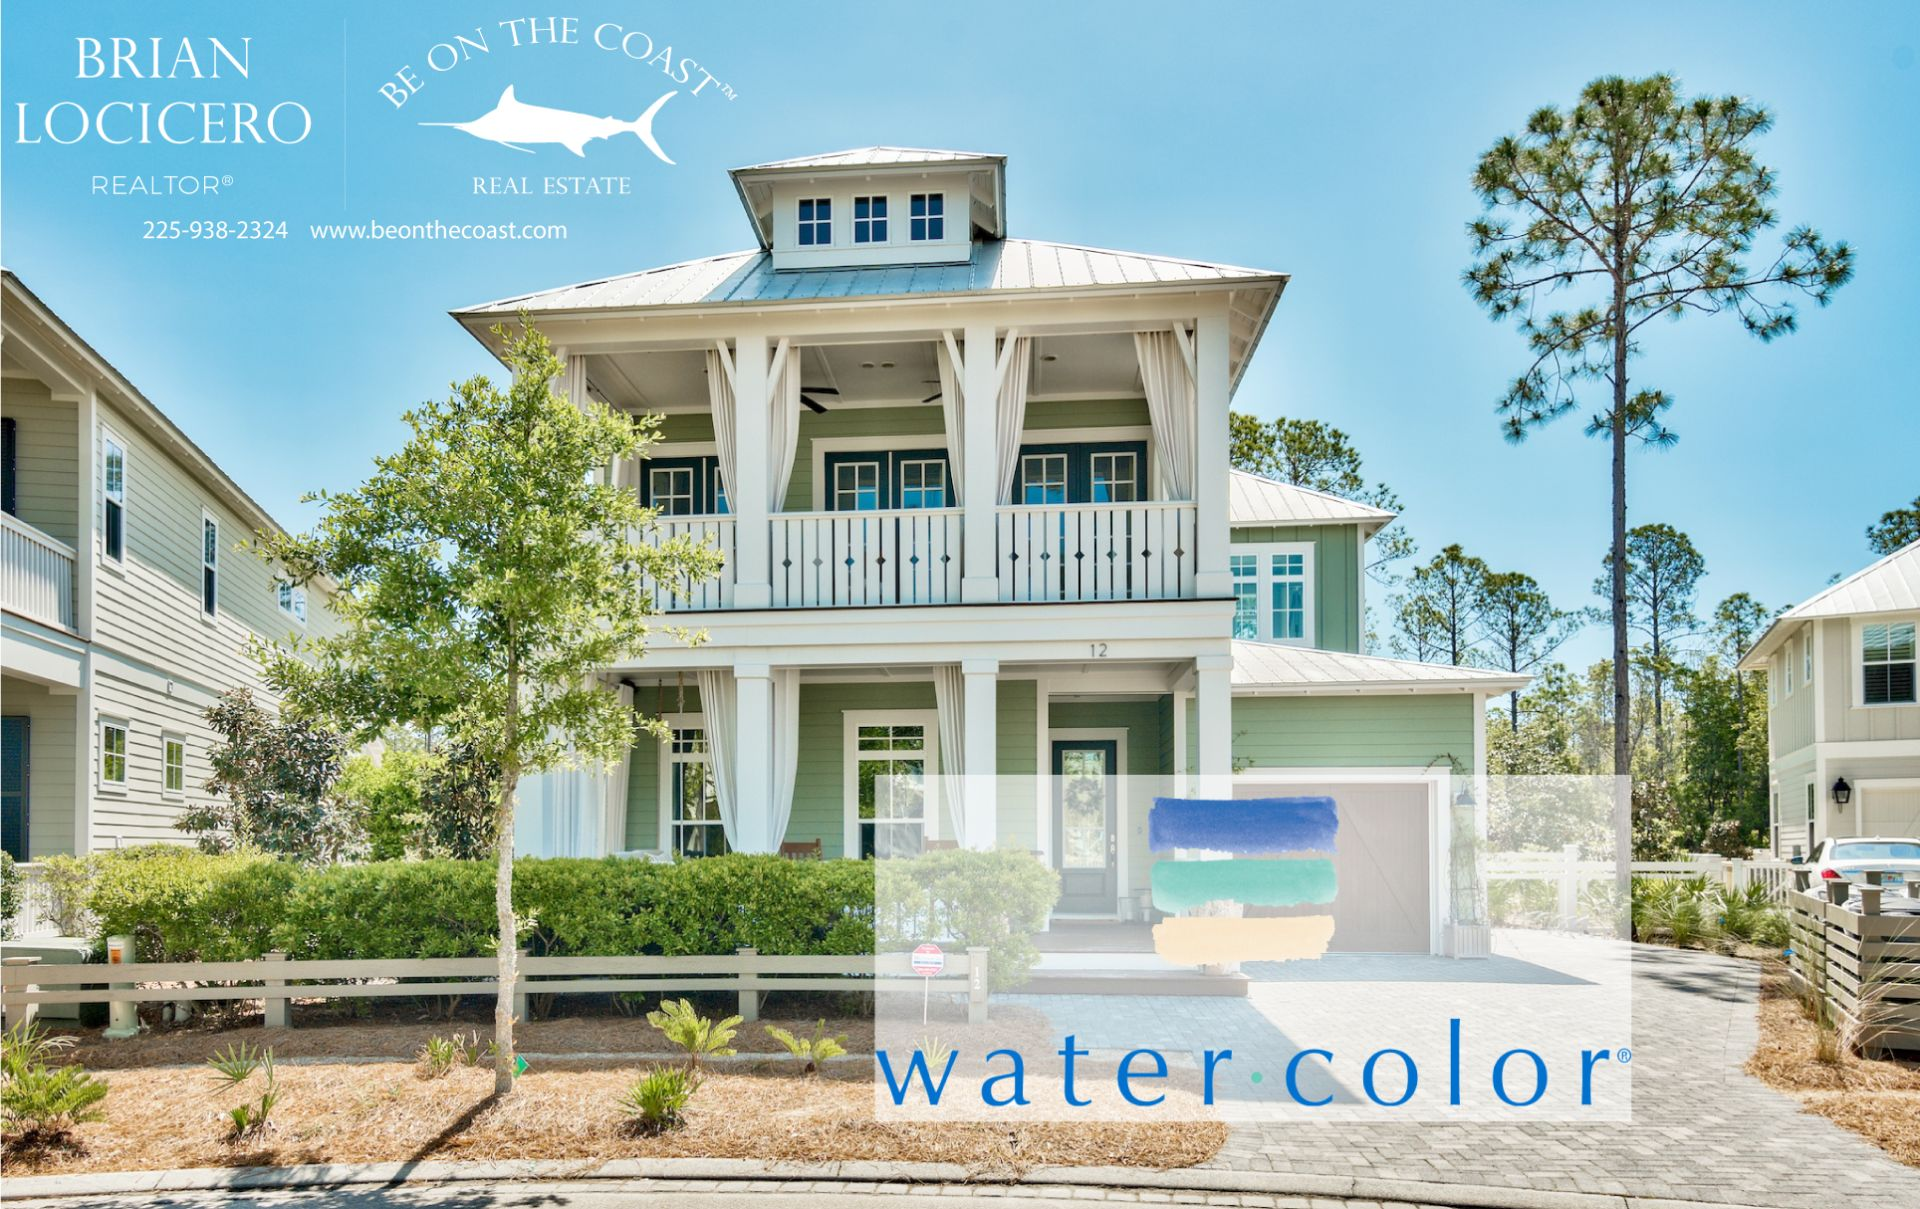 {NEW TO THE MARKET}WATERCOLOR HOME